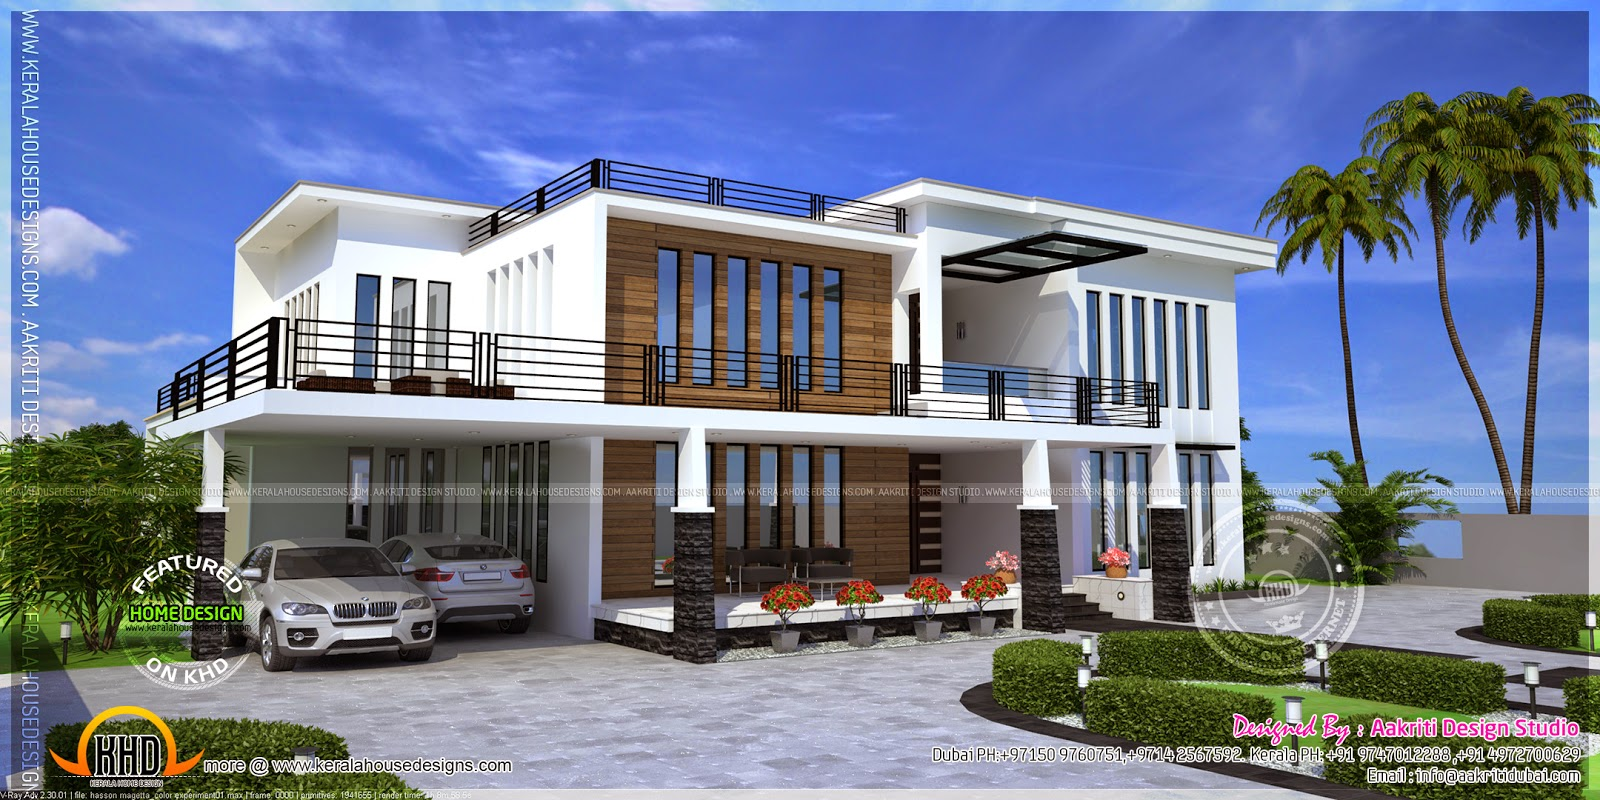 Contemporary house view kerala home design and floor plans for The view house